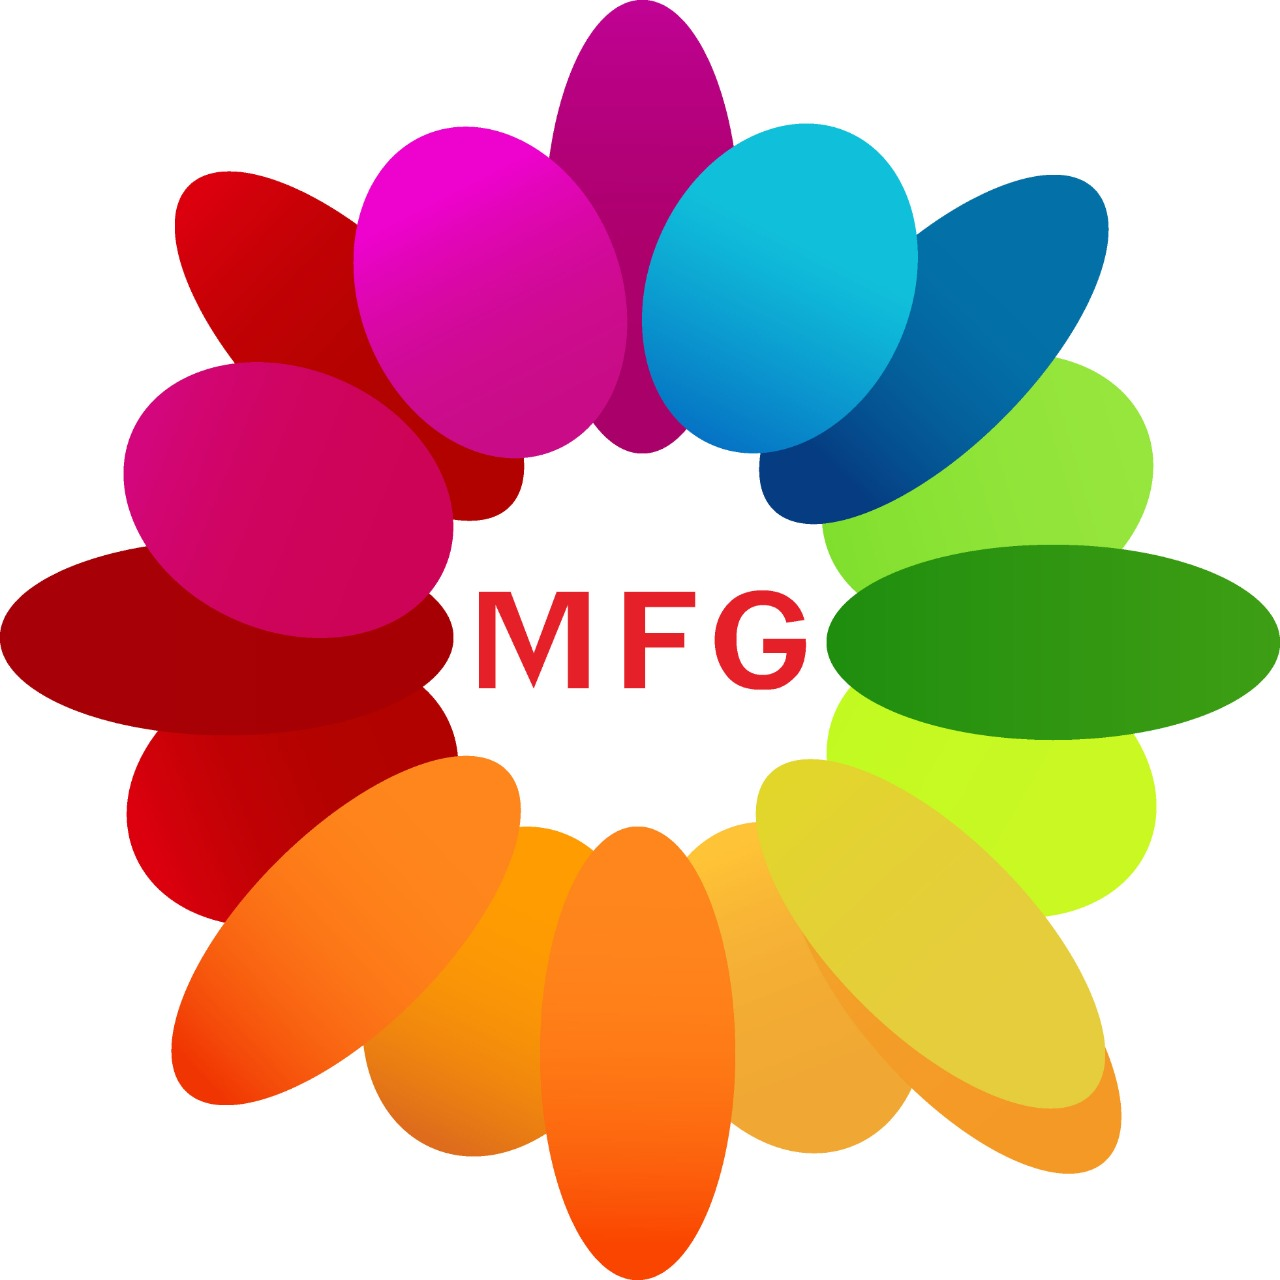 30 Red And White Roses Bunch